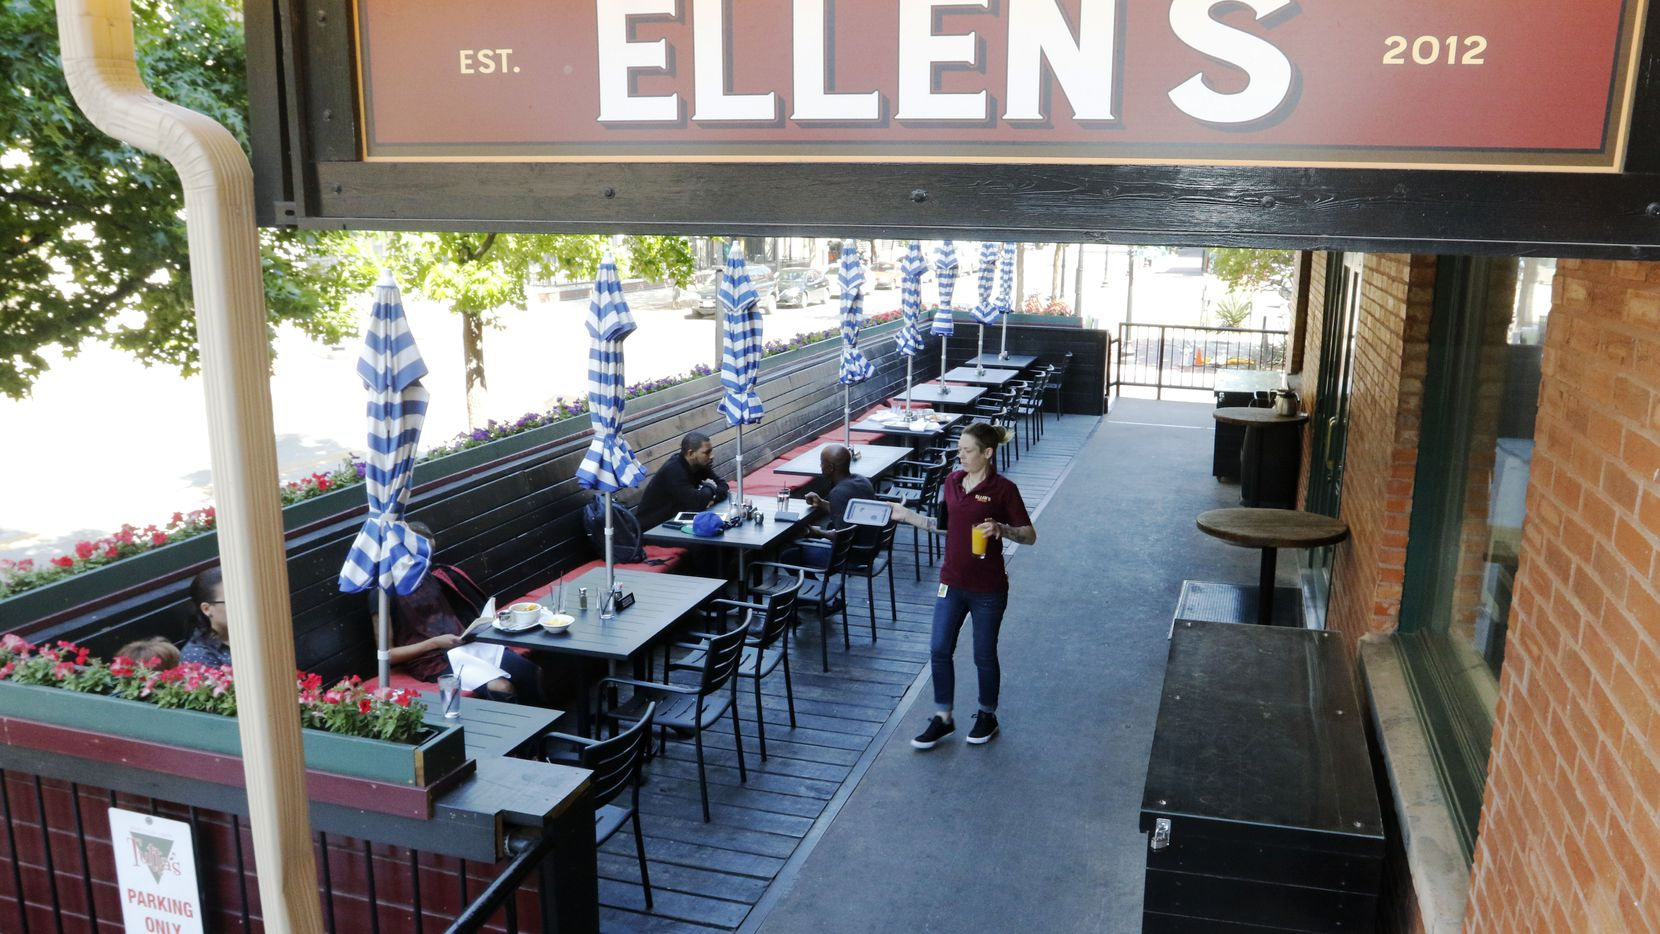 Ellen's, a brunch spot in West End, tripled its capacity after they found that serving breakfast all day was popular among travelers and businesspeople in Dallas.